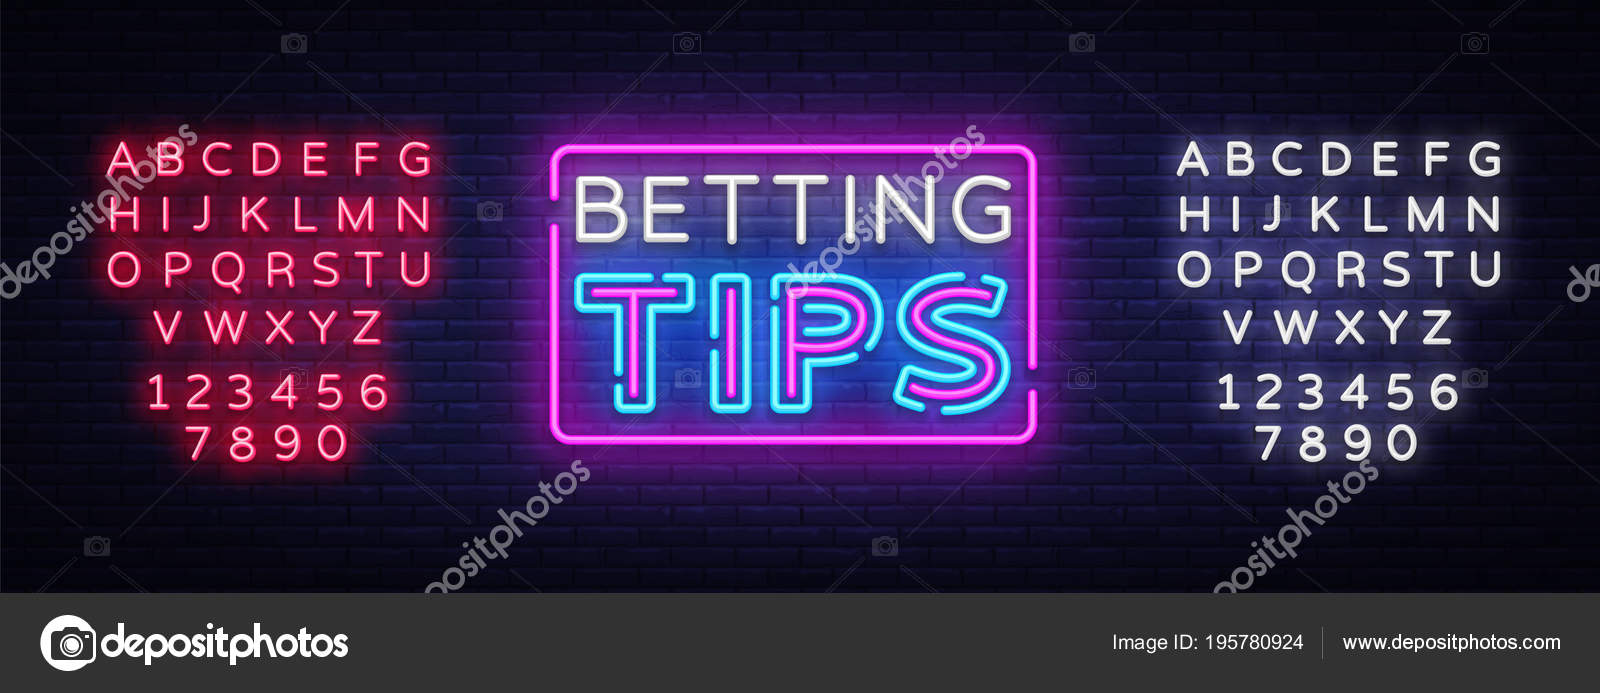 Betting Tips vector  Bet Tips neon sign  Bright night